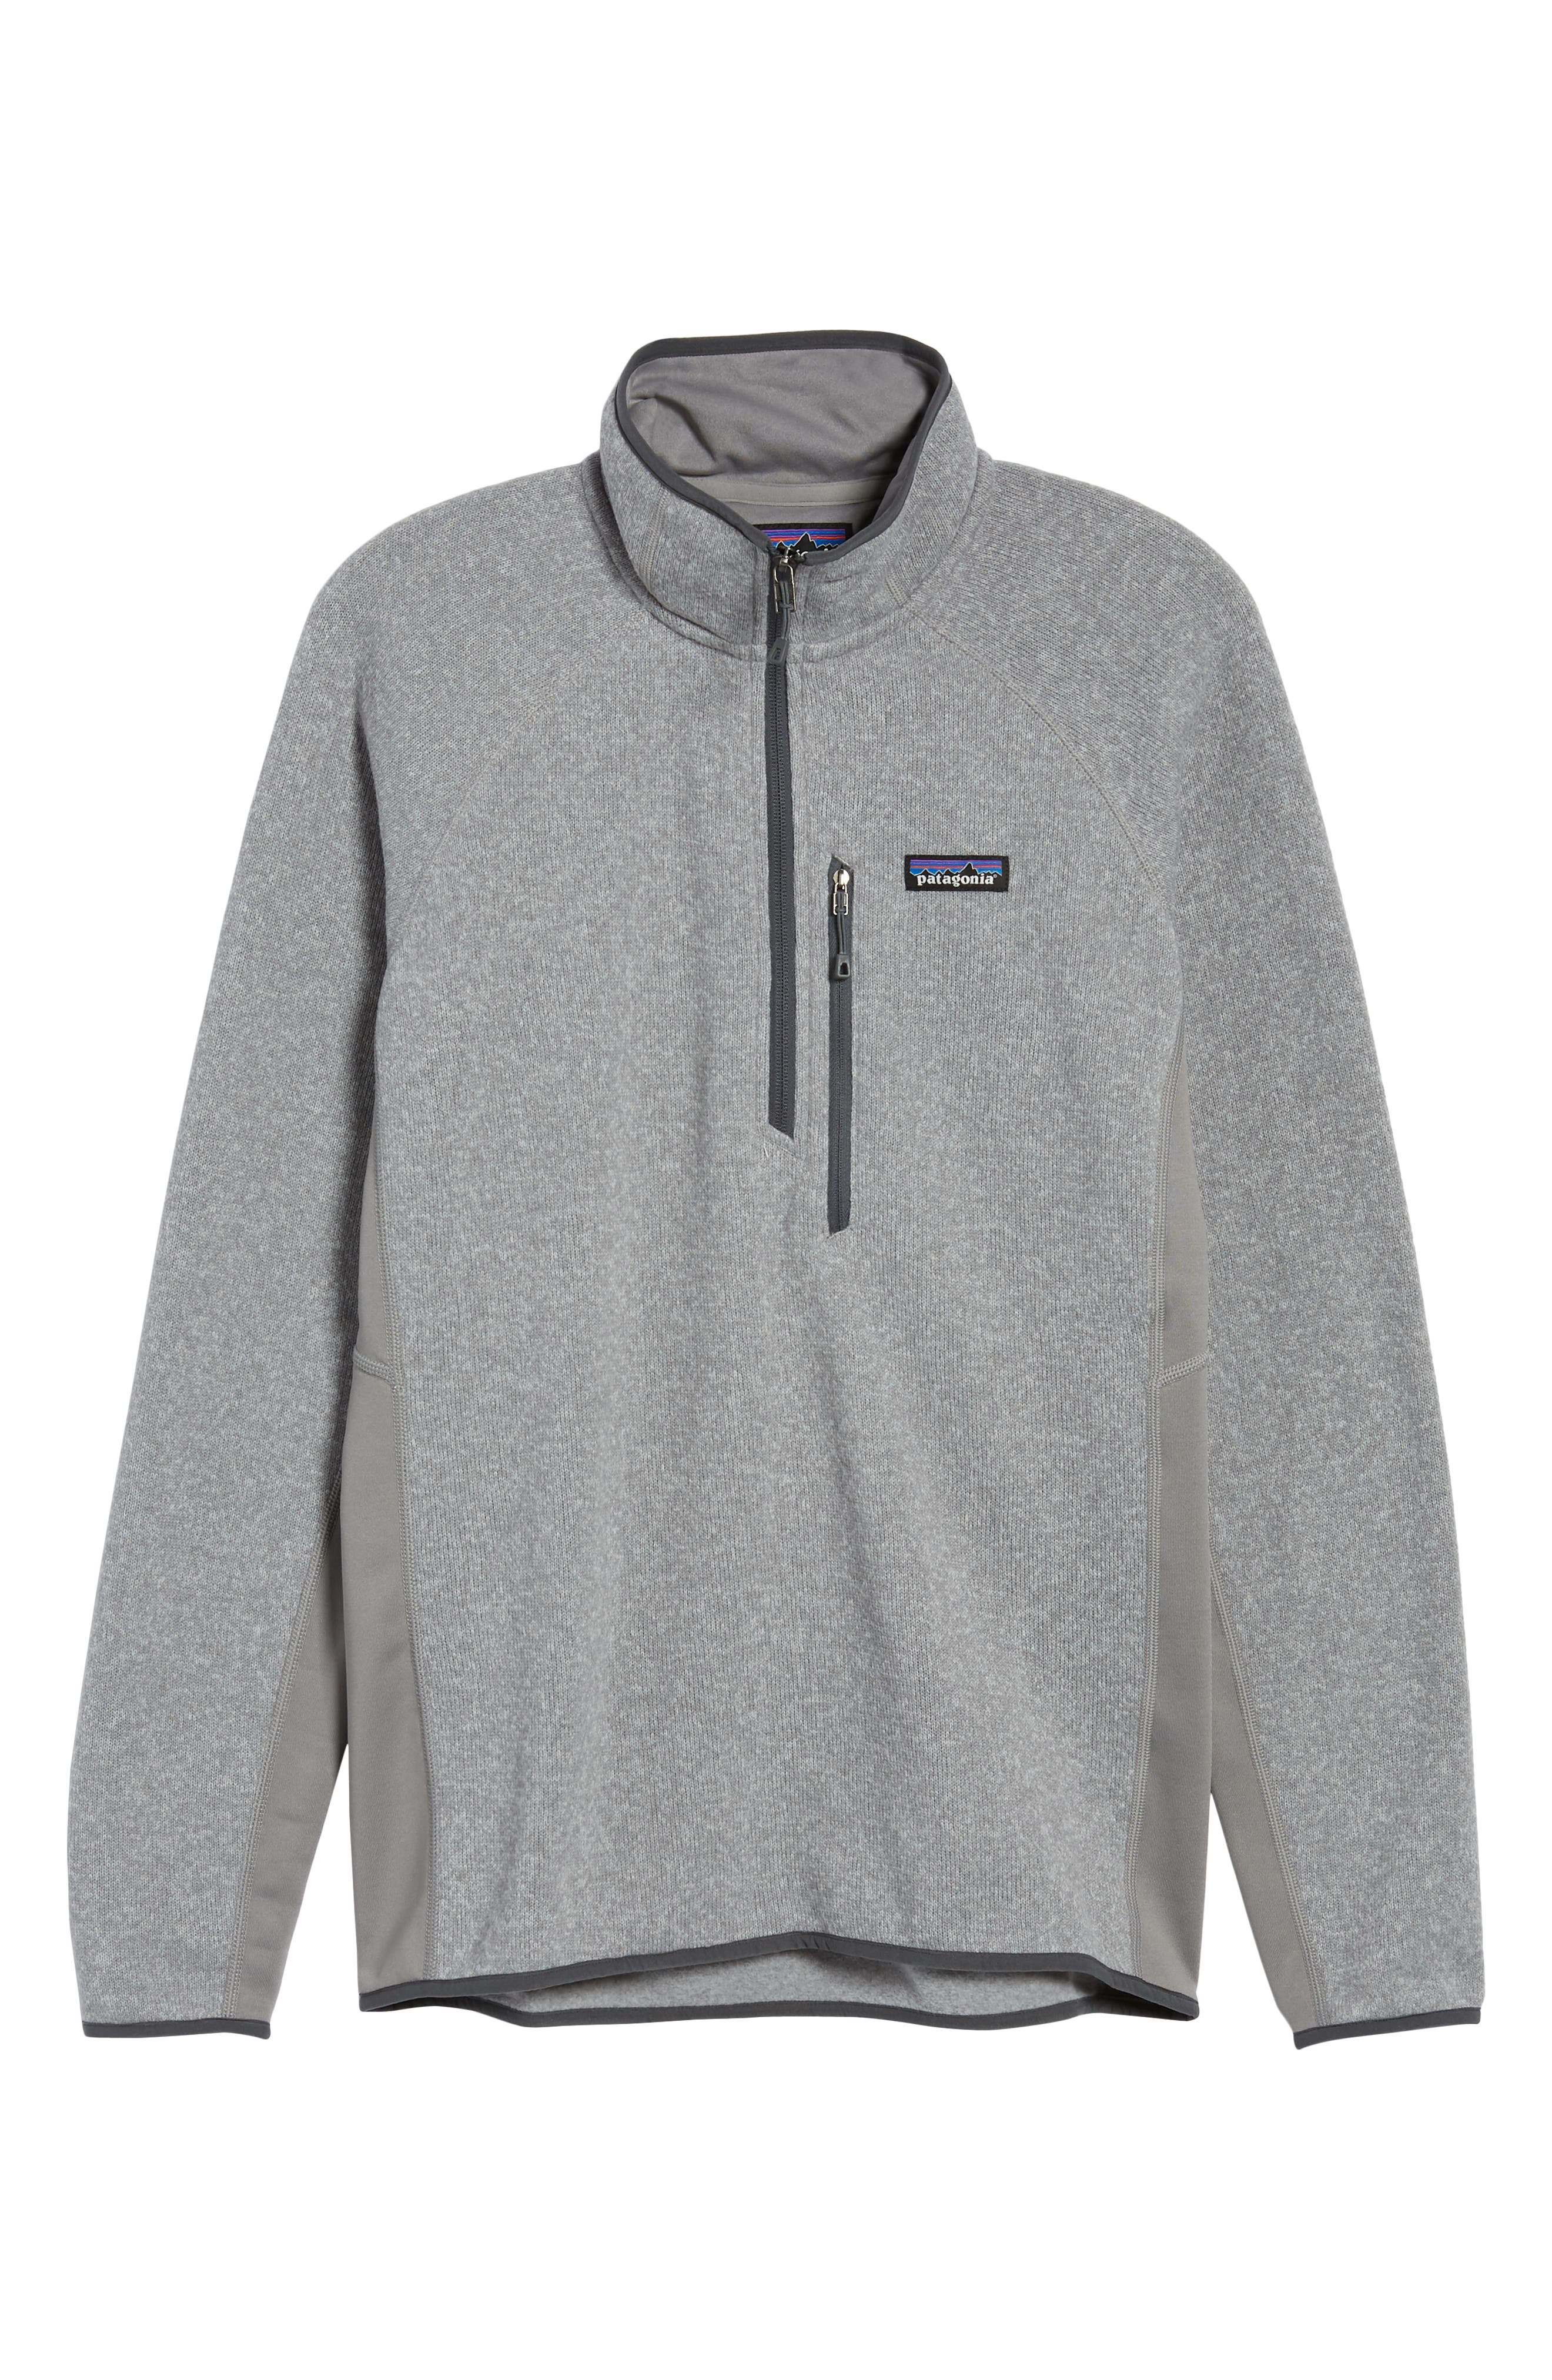 Performance Pullover,                             Alternate thumbnail 6, color,                             Feather Grey